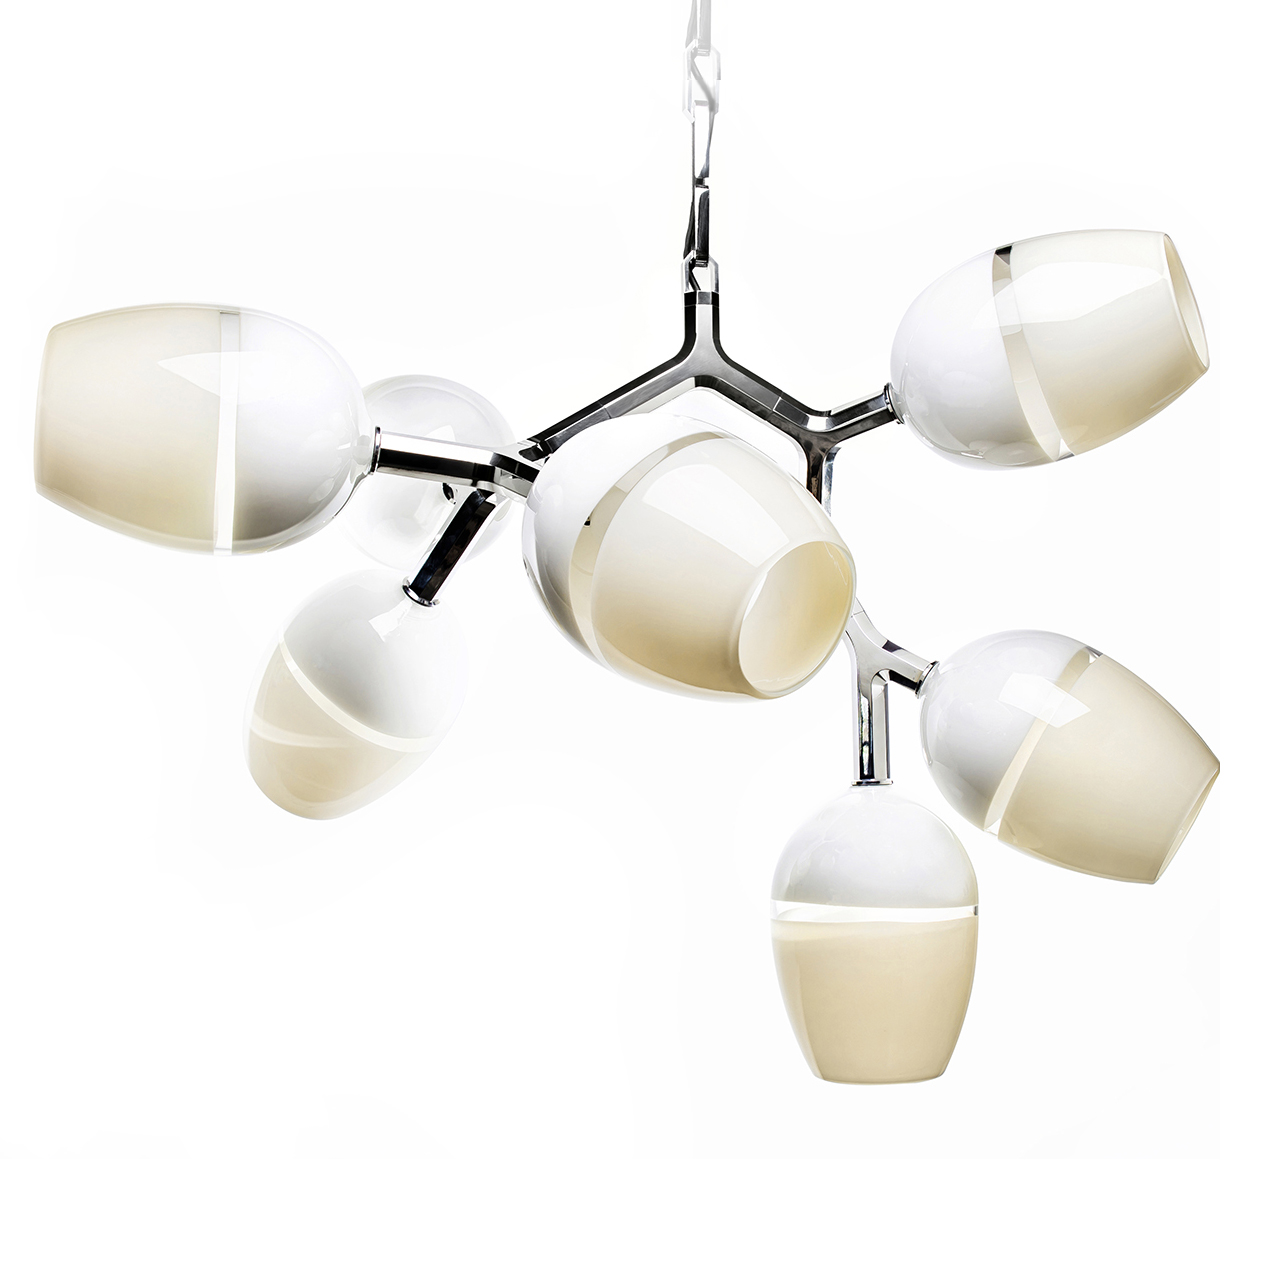 Hand Blown Glass Lighting. 8 light scuro antler chandelier by siemon and salazar